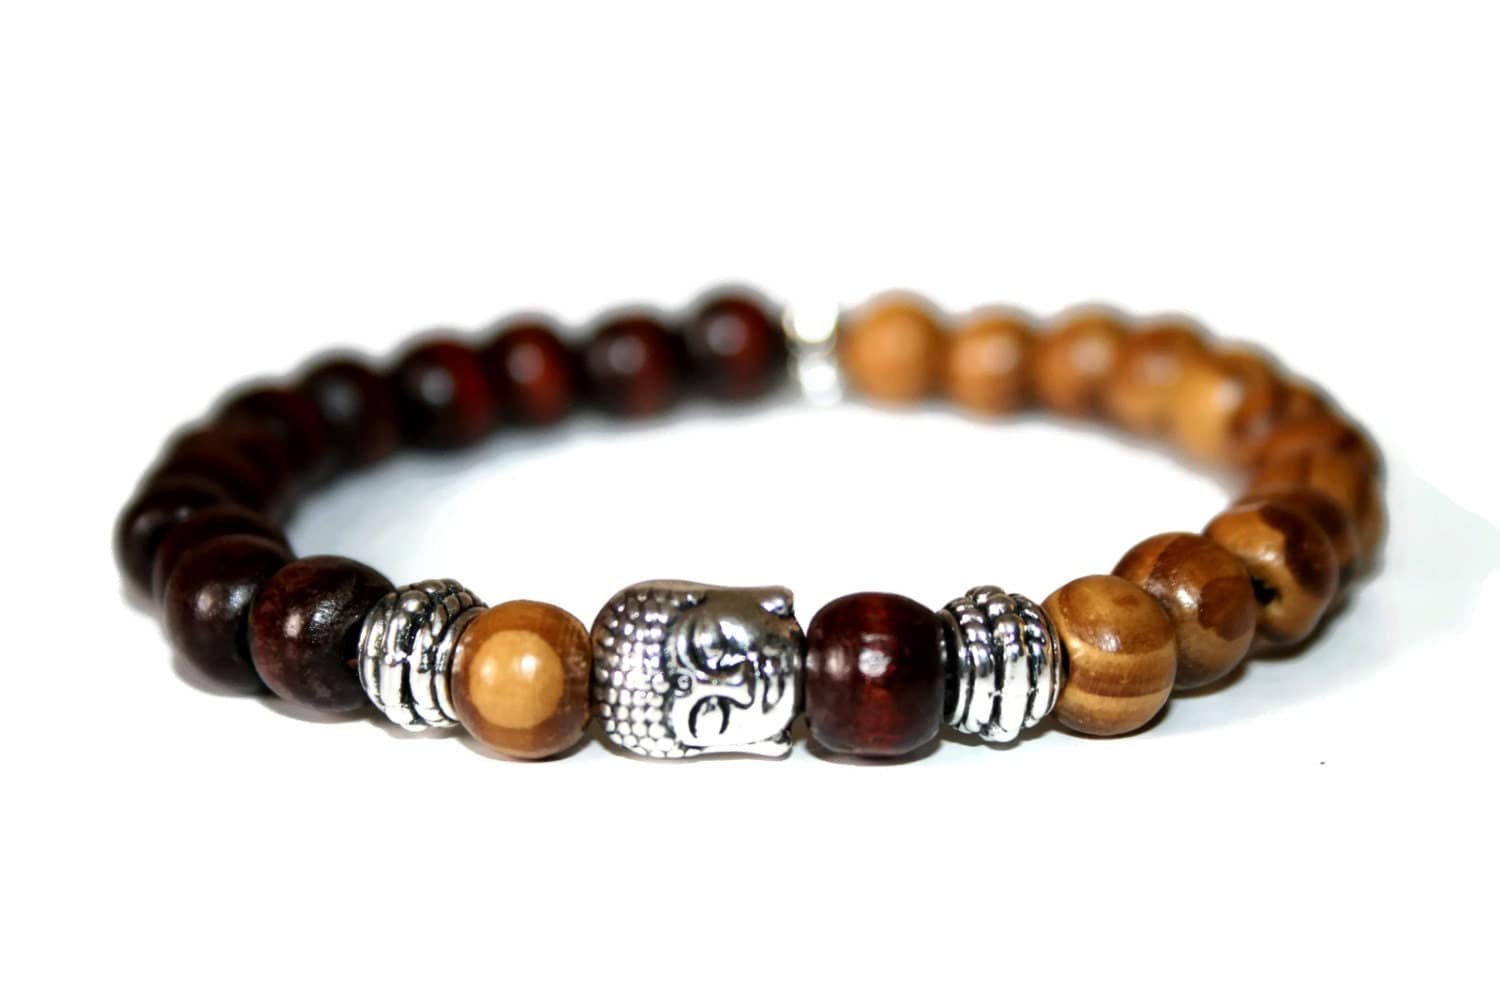 Buddha bracelet wood bracelet buddhist jewelry by zendelux for Zen culture jewelry reviews